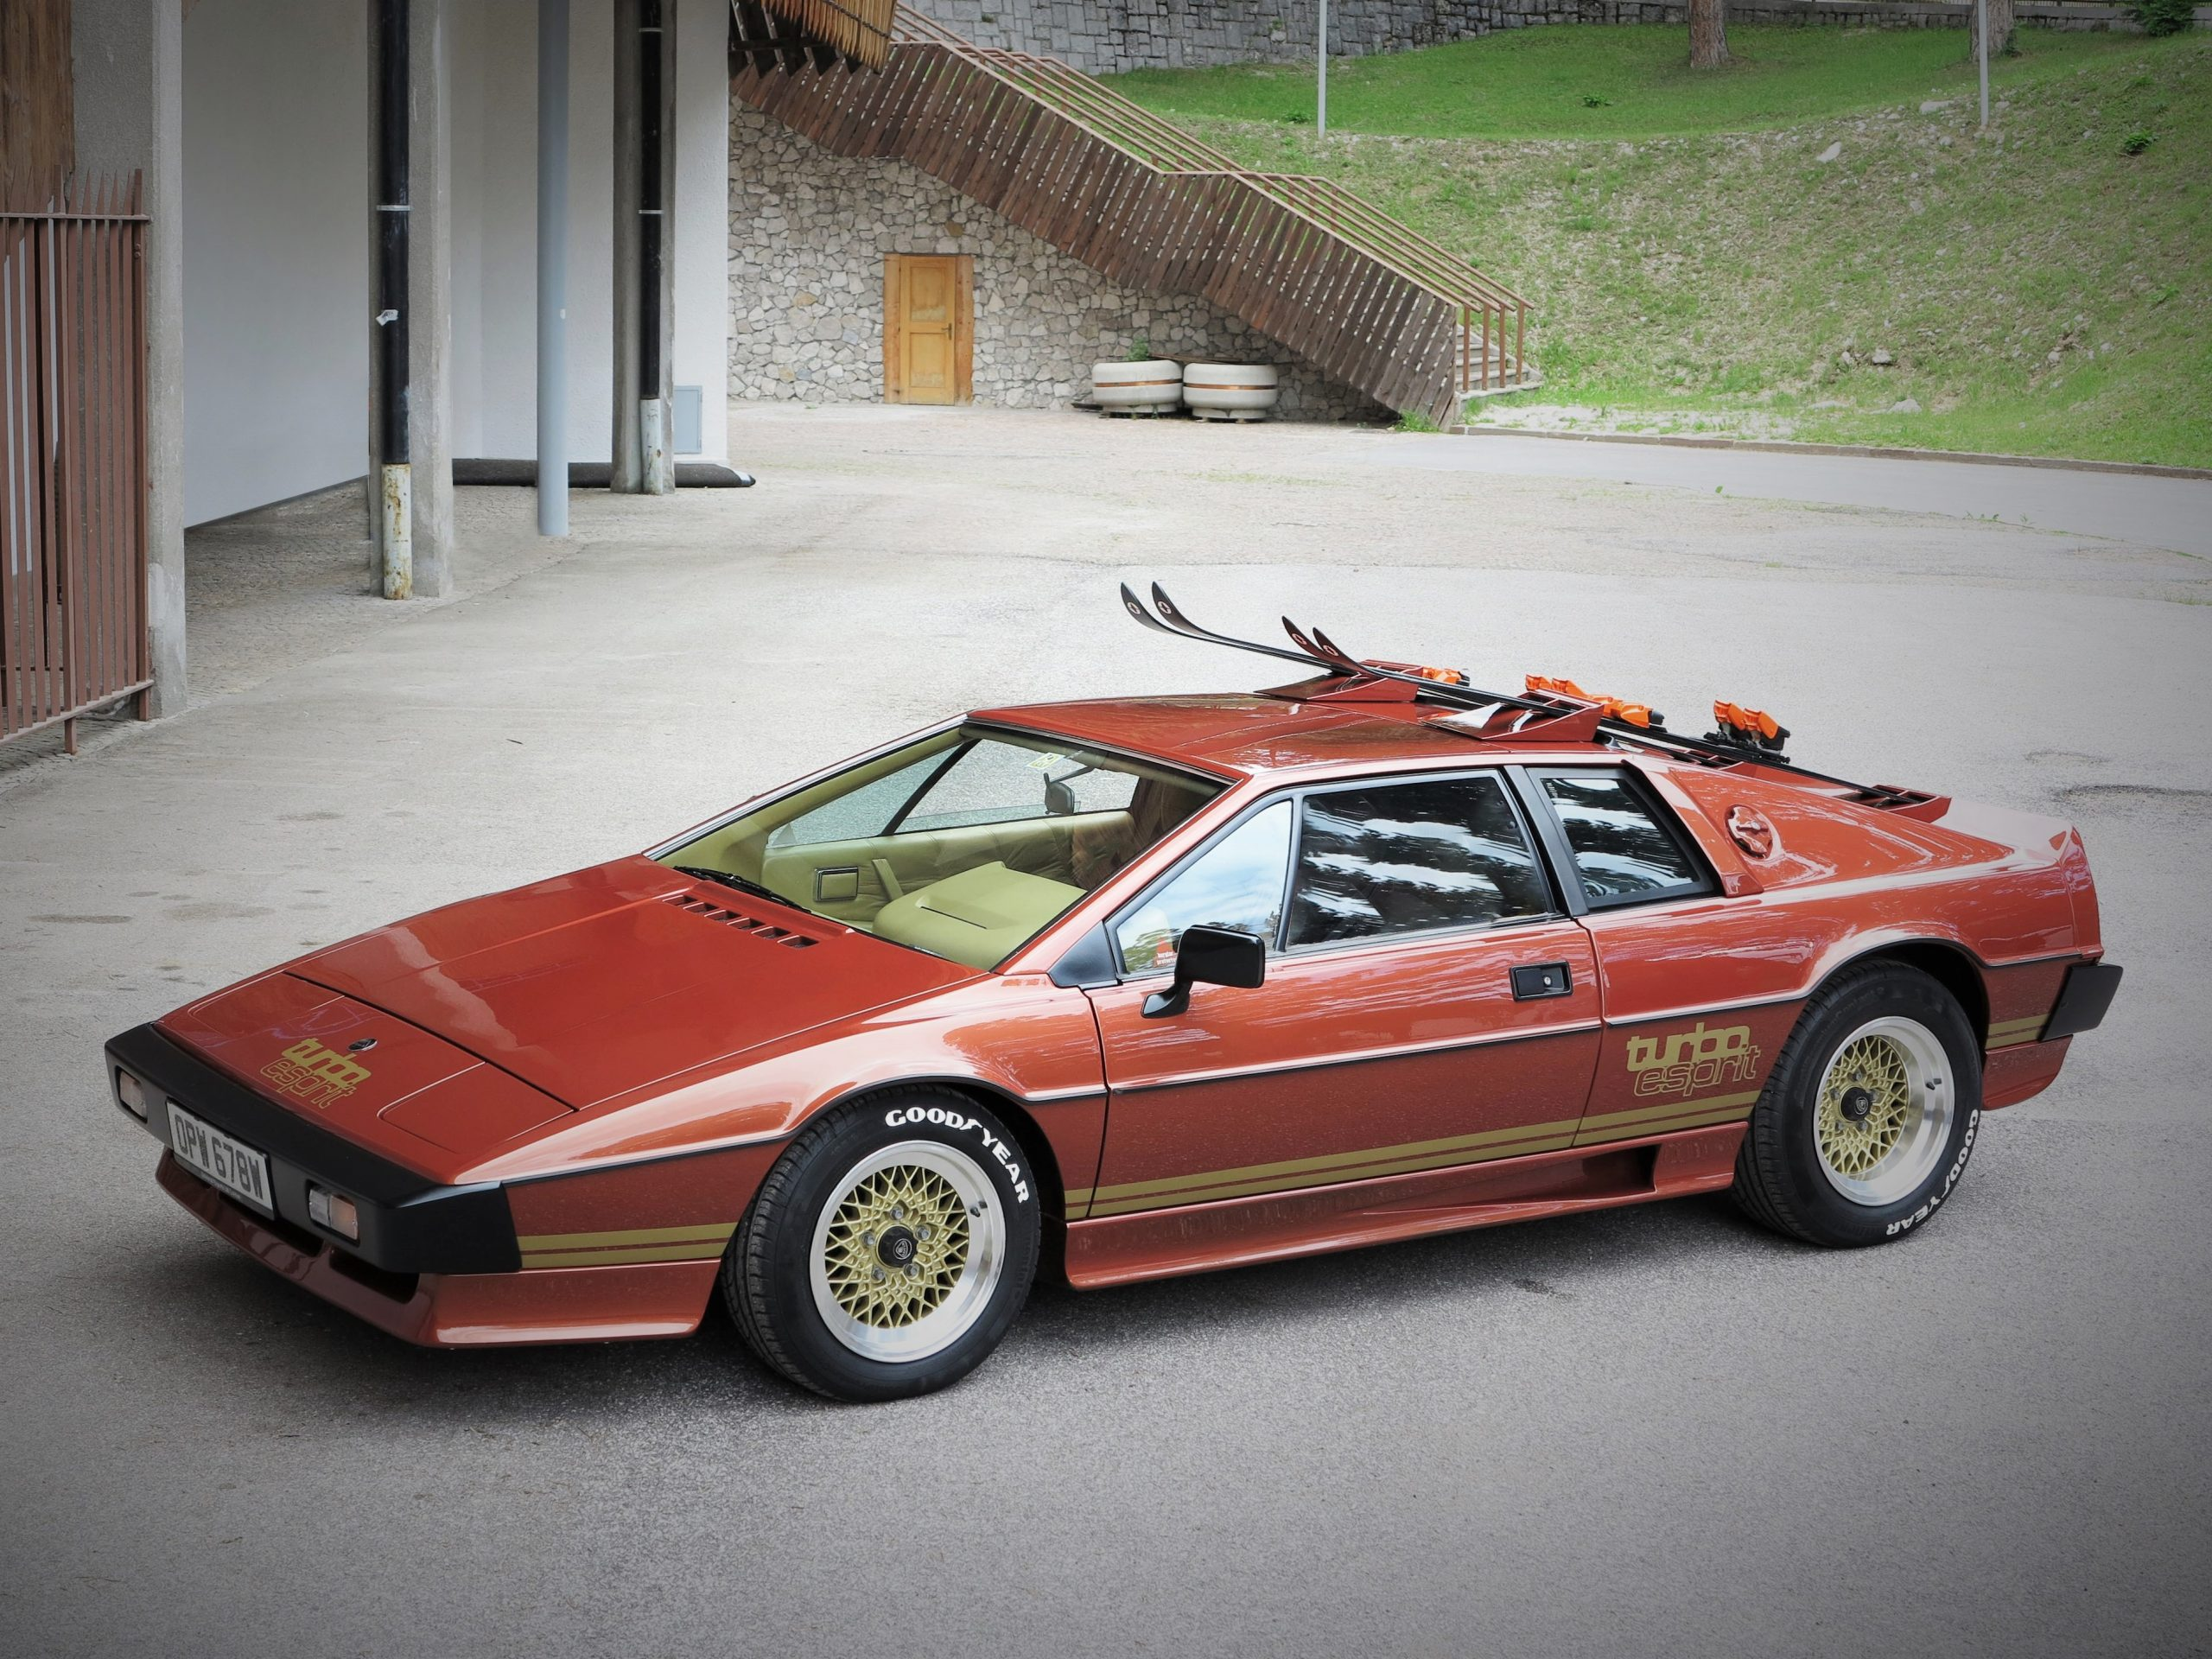 james bond lotus esprit turbo front three-quarter from 1981 film for your eyes only